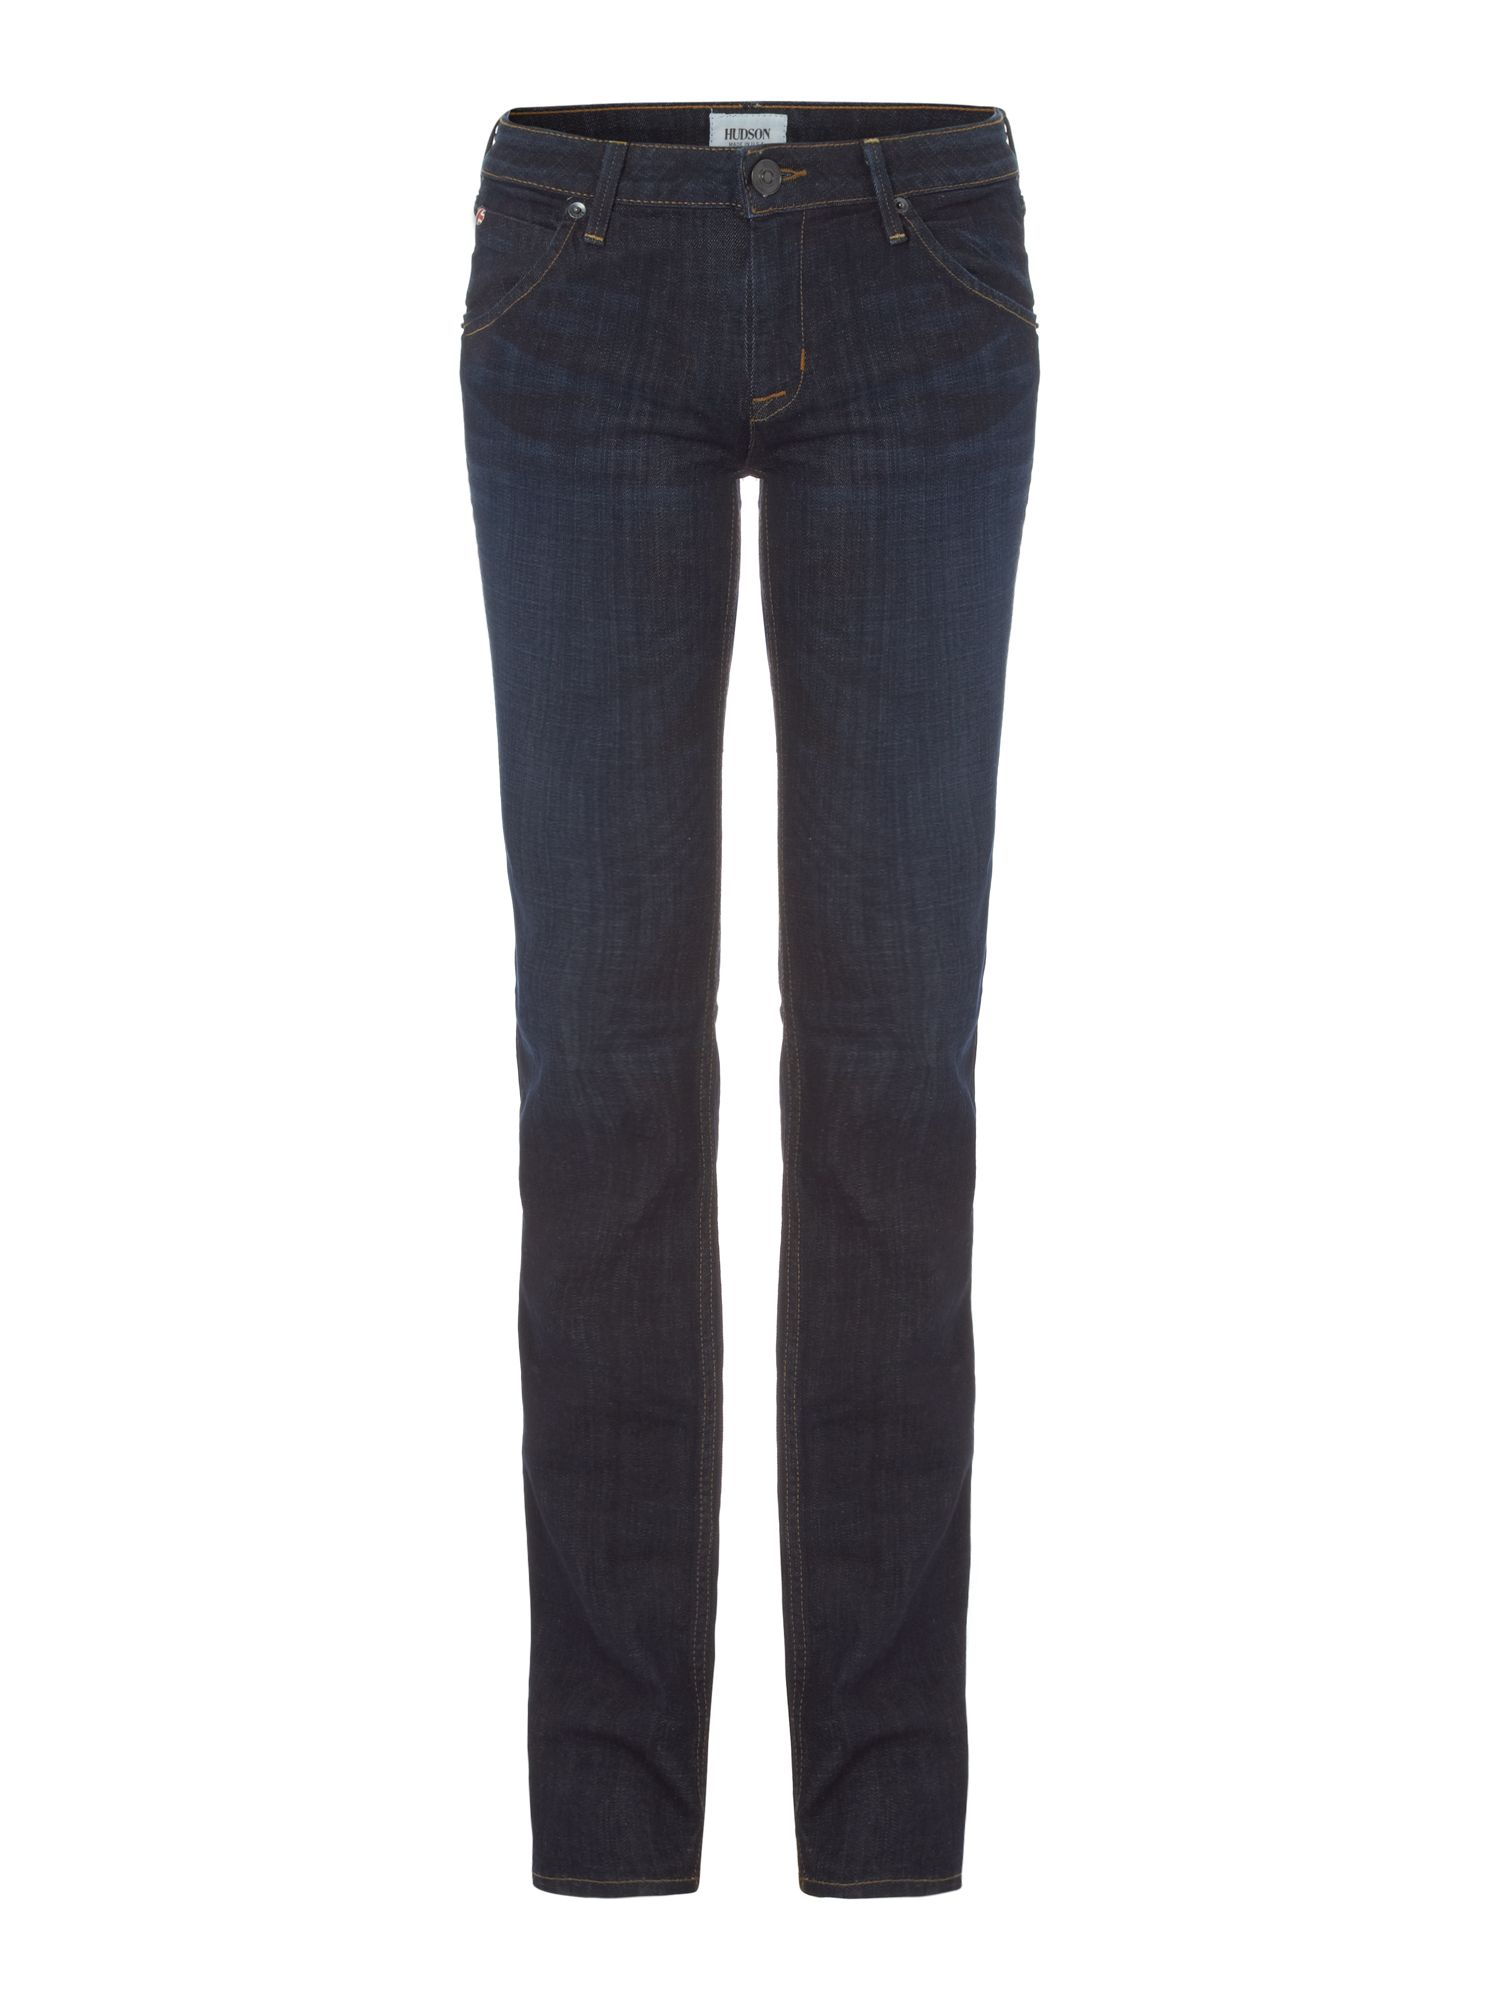 Carly straight leg jeans in Loving Cup